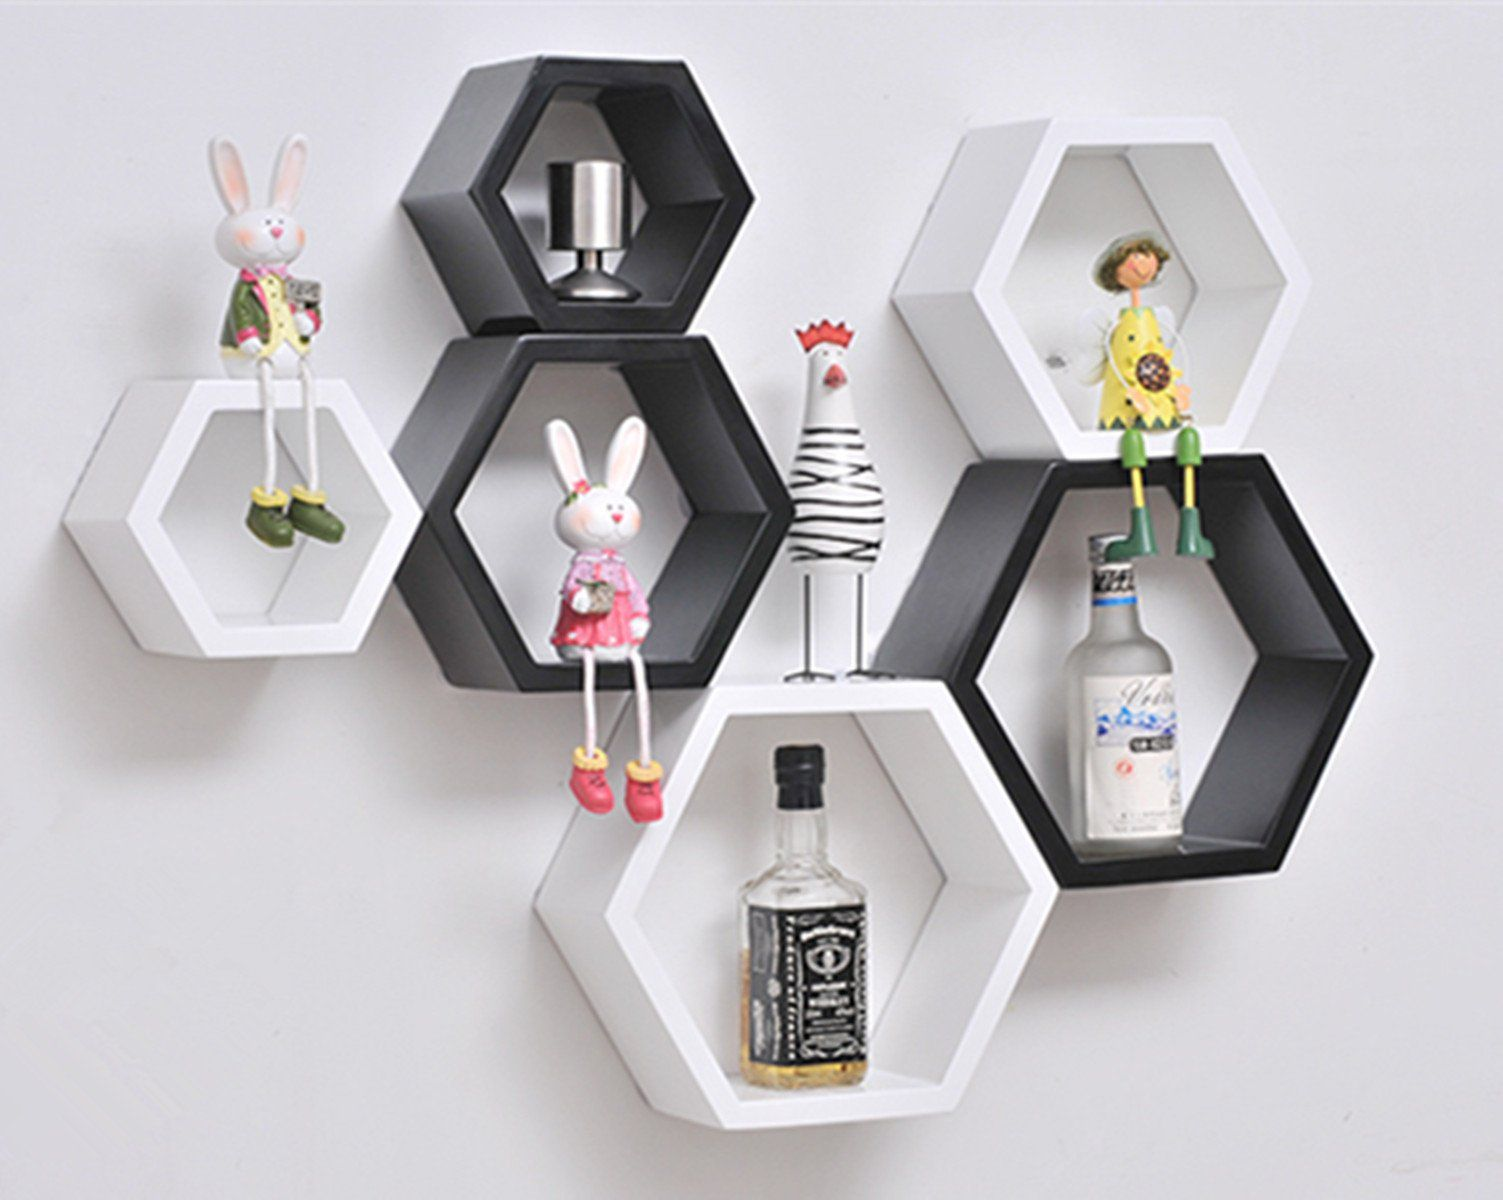 ZJchao DIY Decorative Wall Ornaments Floating Shelves Cube